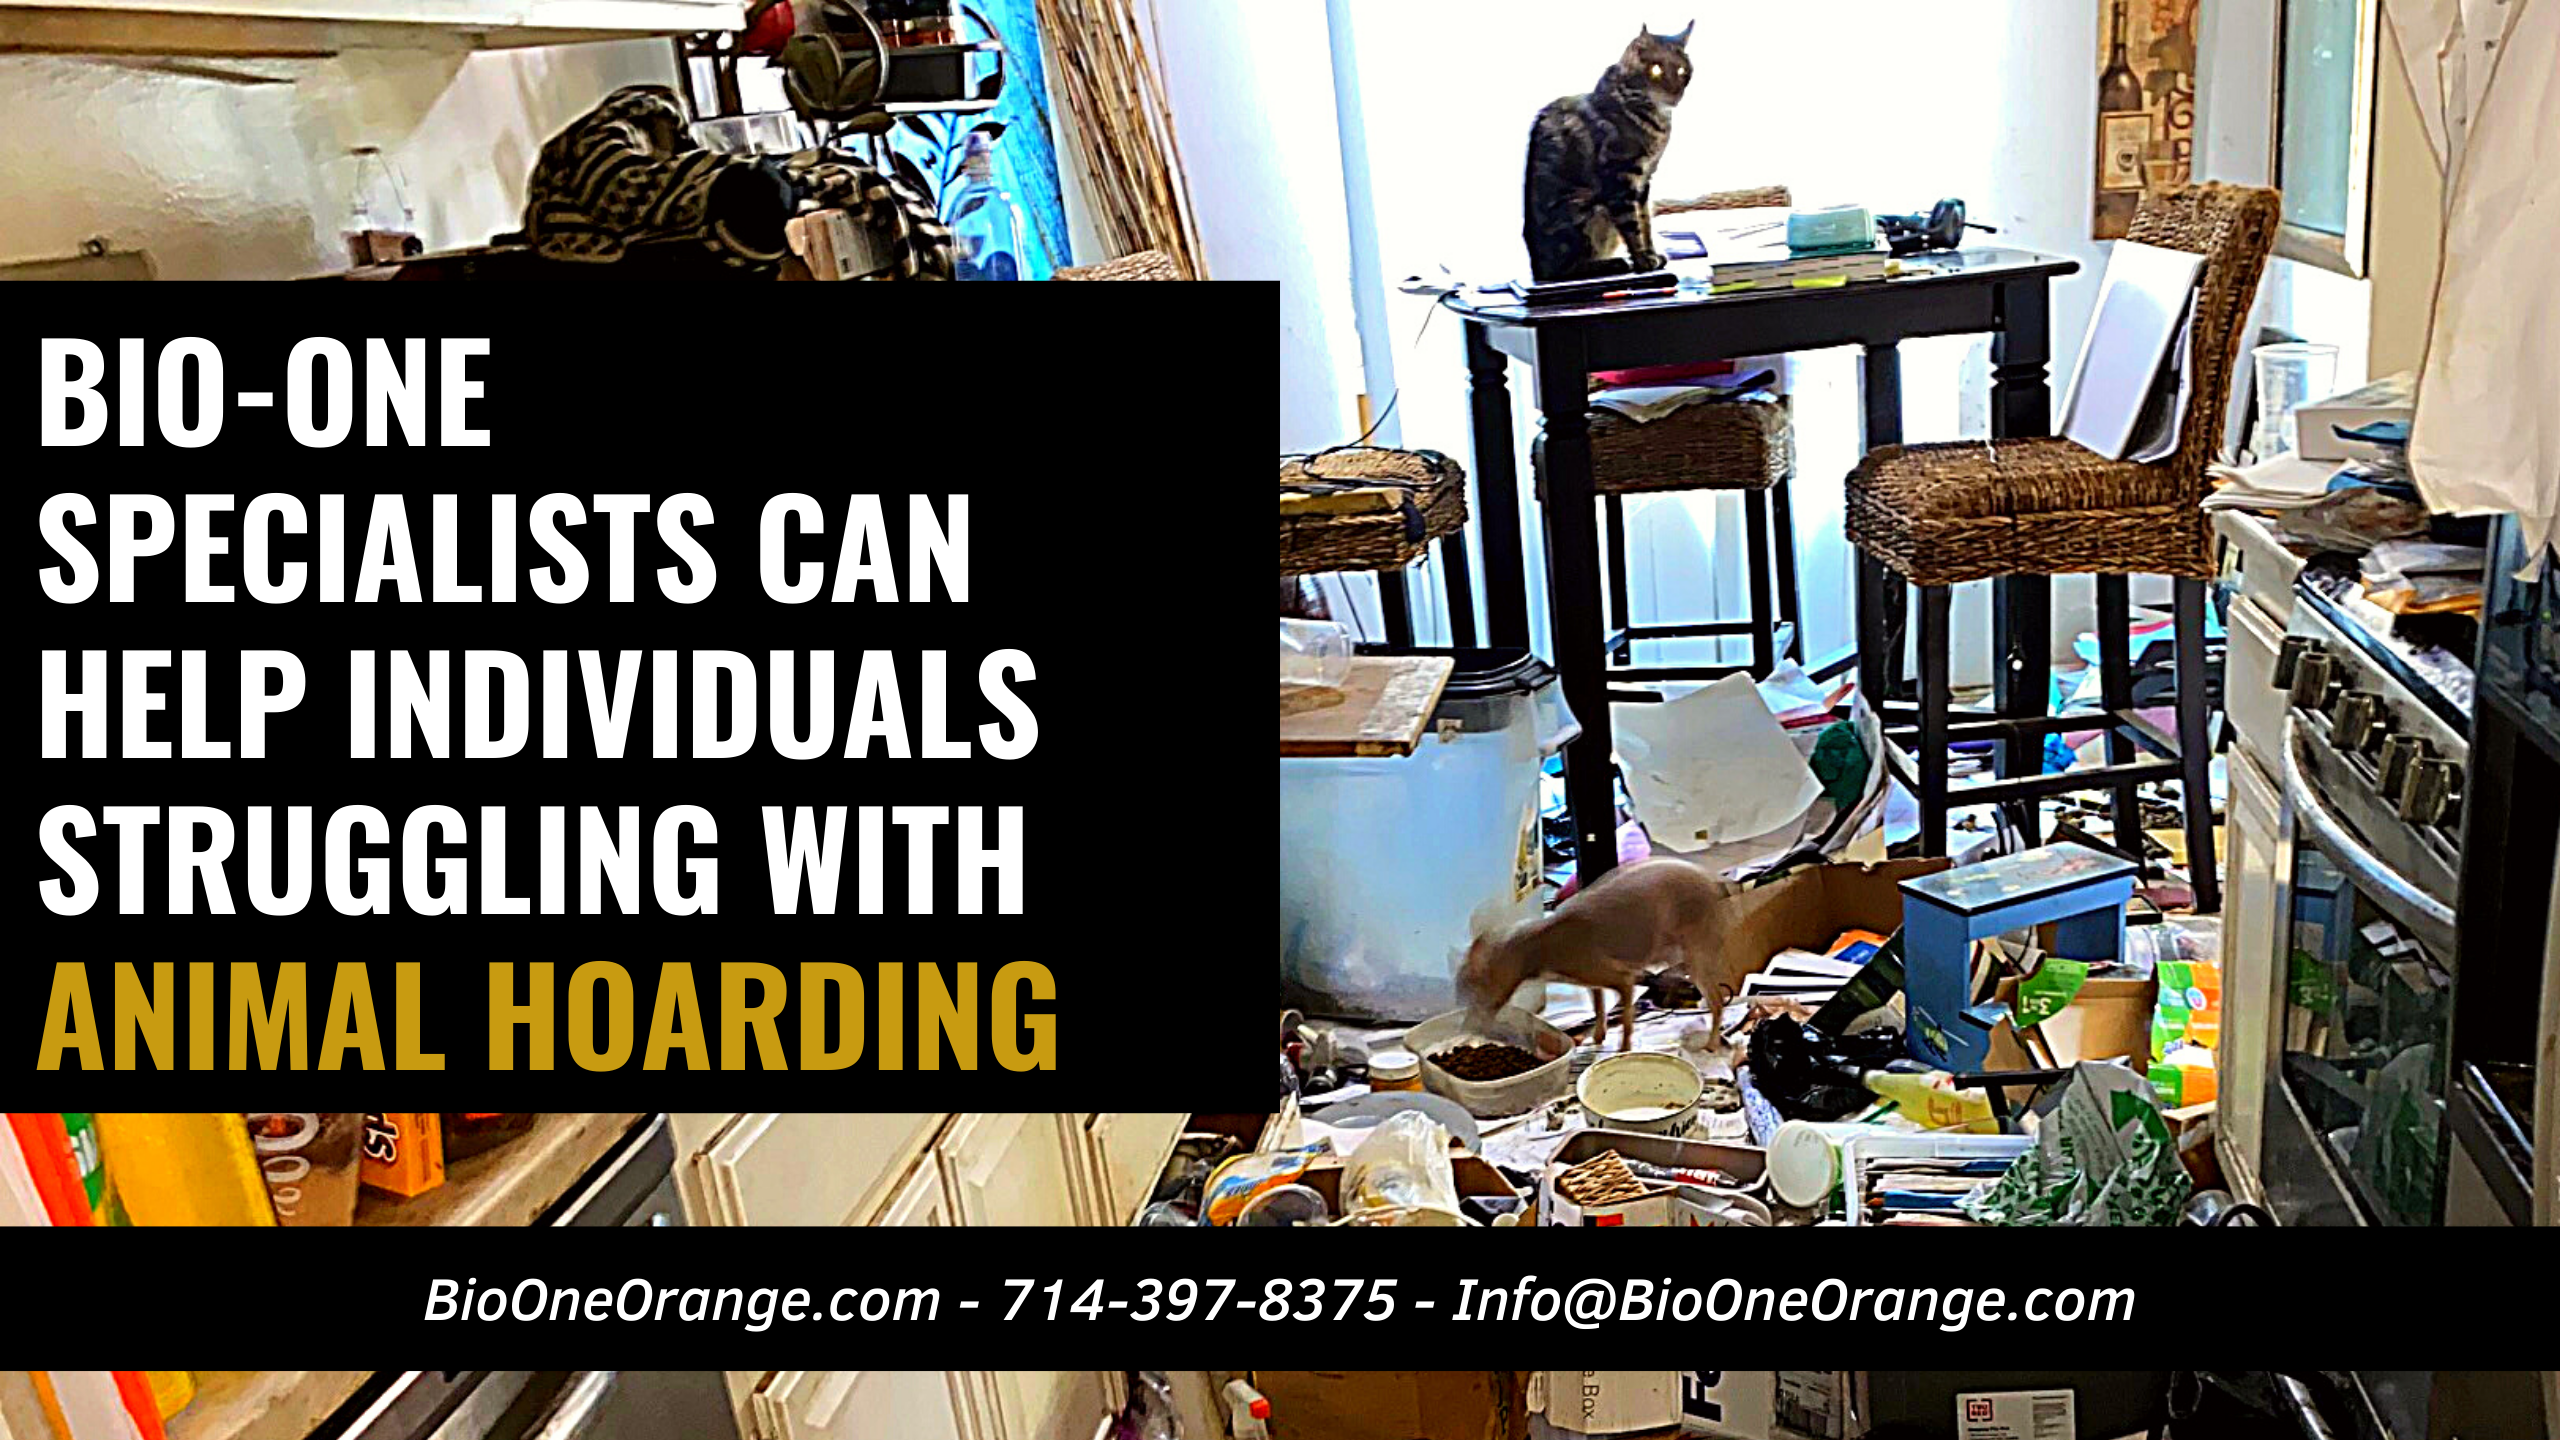 How Bio-One Specialists can help Individuals struggling with Animal Hoarding